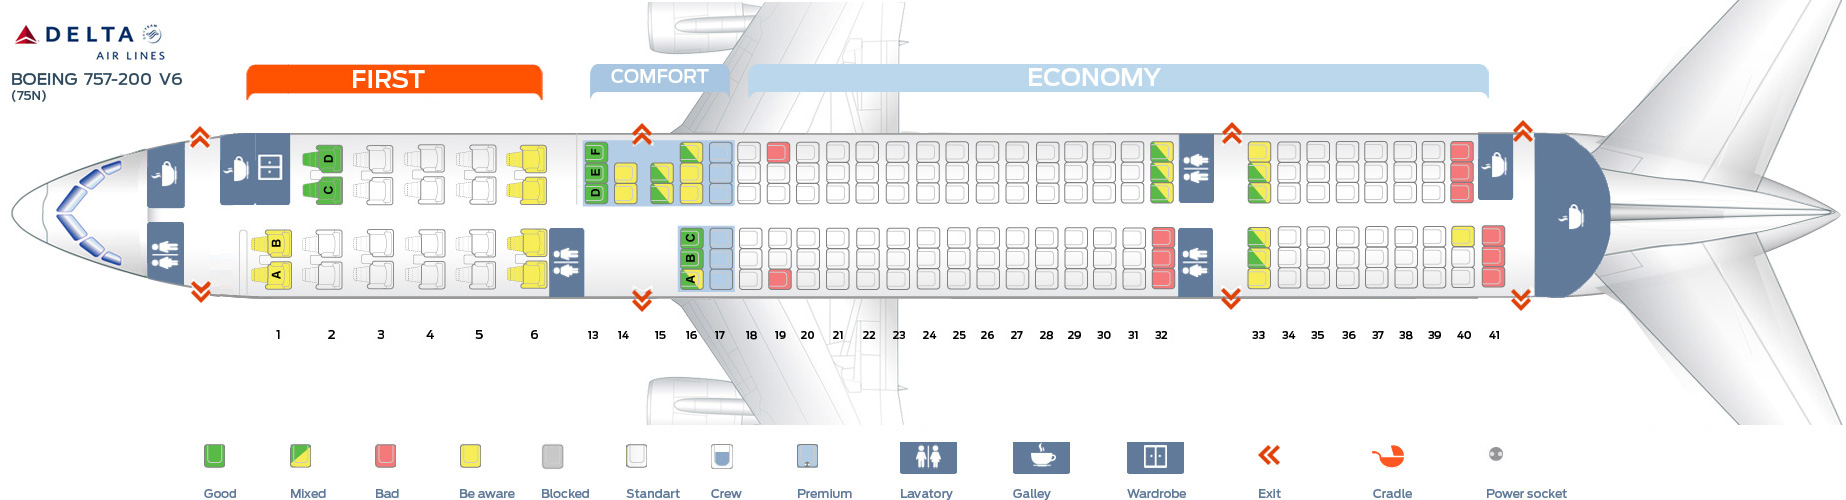 Seat_map_Delta_Airlines_Boeing_757-200_75N_v6